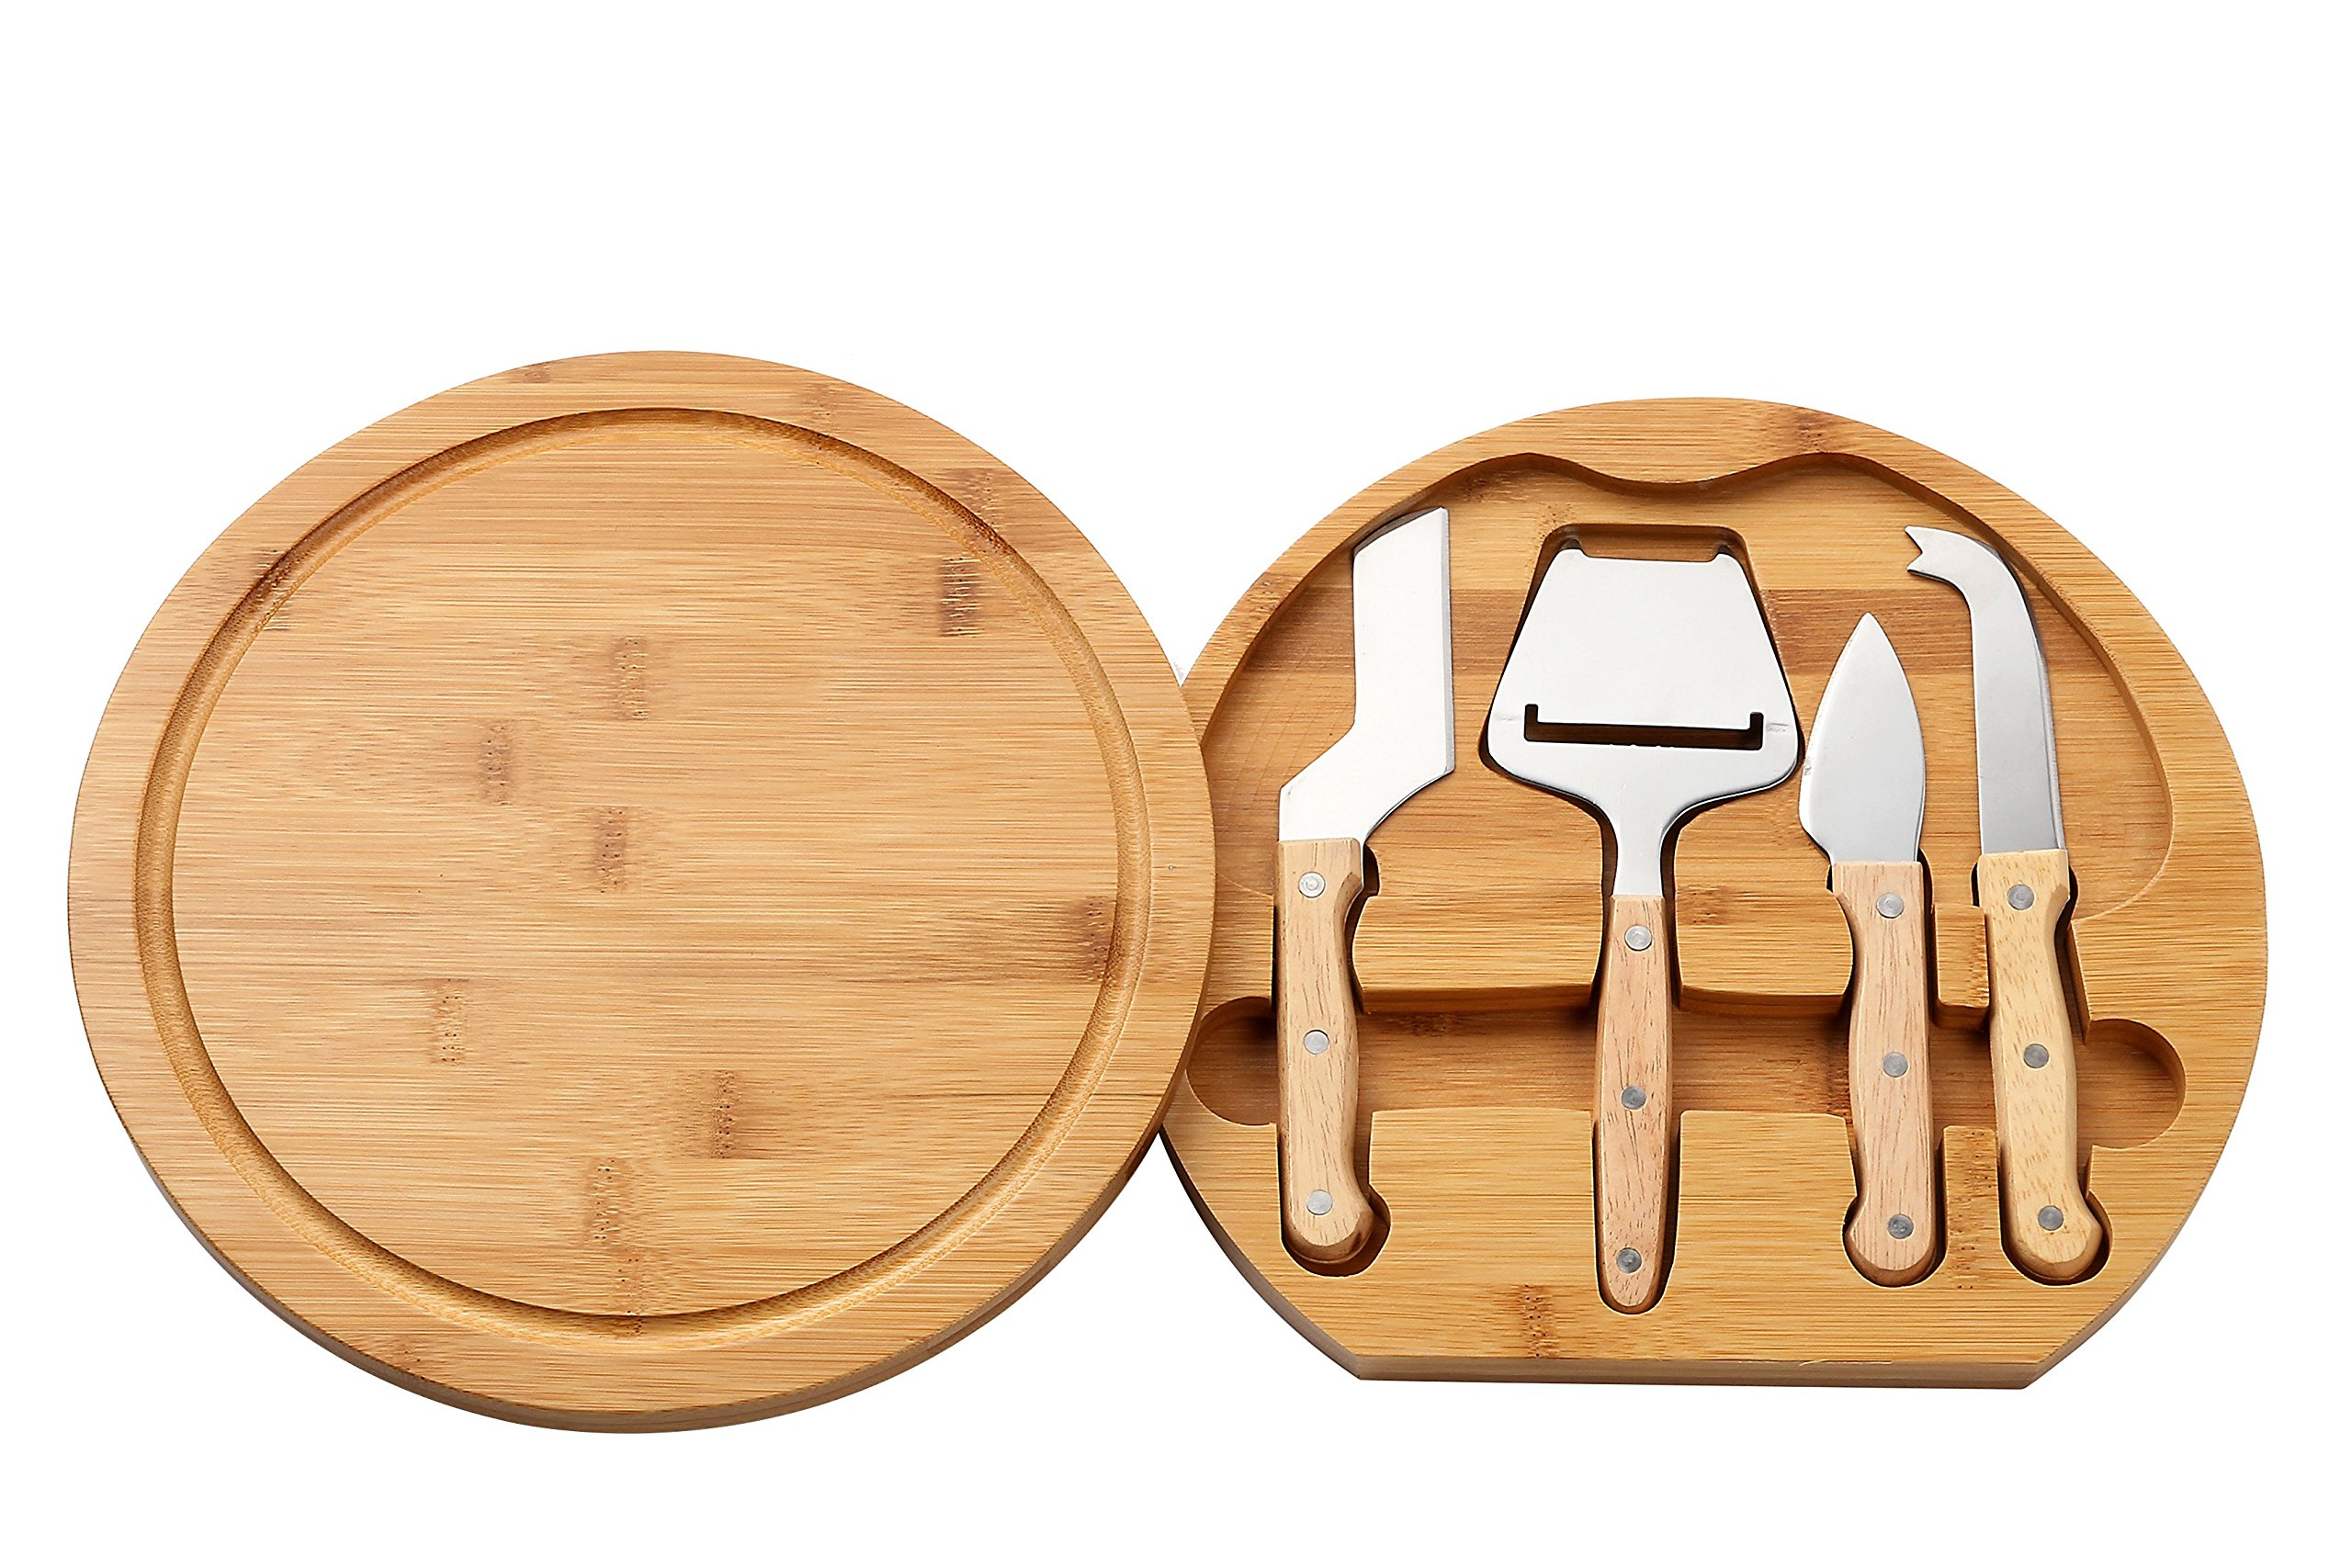 Cheese Board Set - Charcuterie Board and Cheese Tools, Cheese and Meat Board, Includes 1 Bamboo Cutting Board and 5 Piece Knife Tools, 10.2'' x 10.2'' x 1.5''